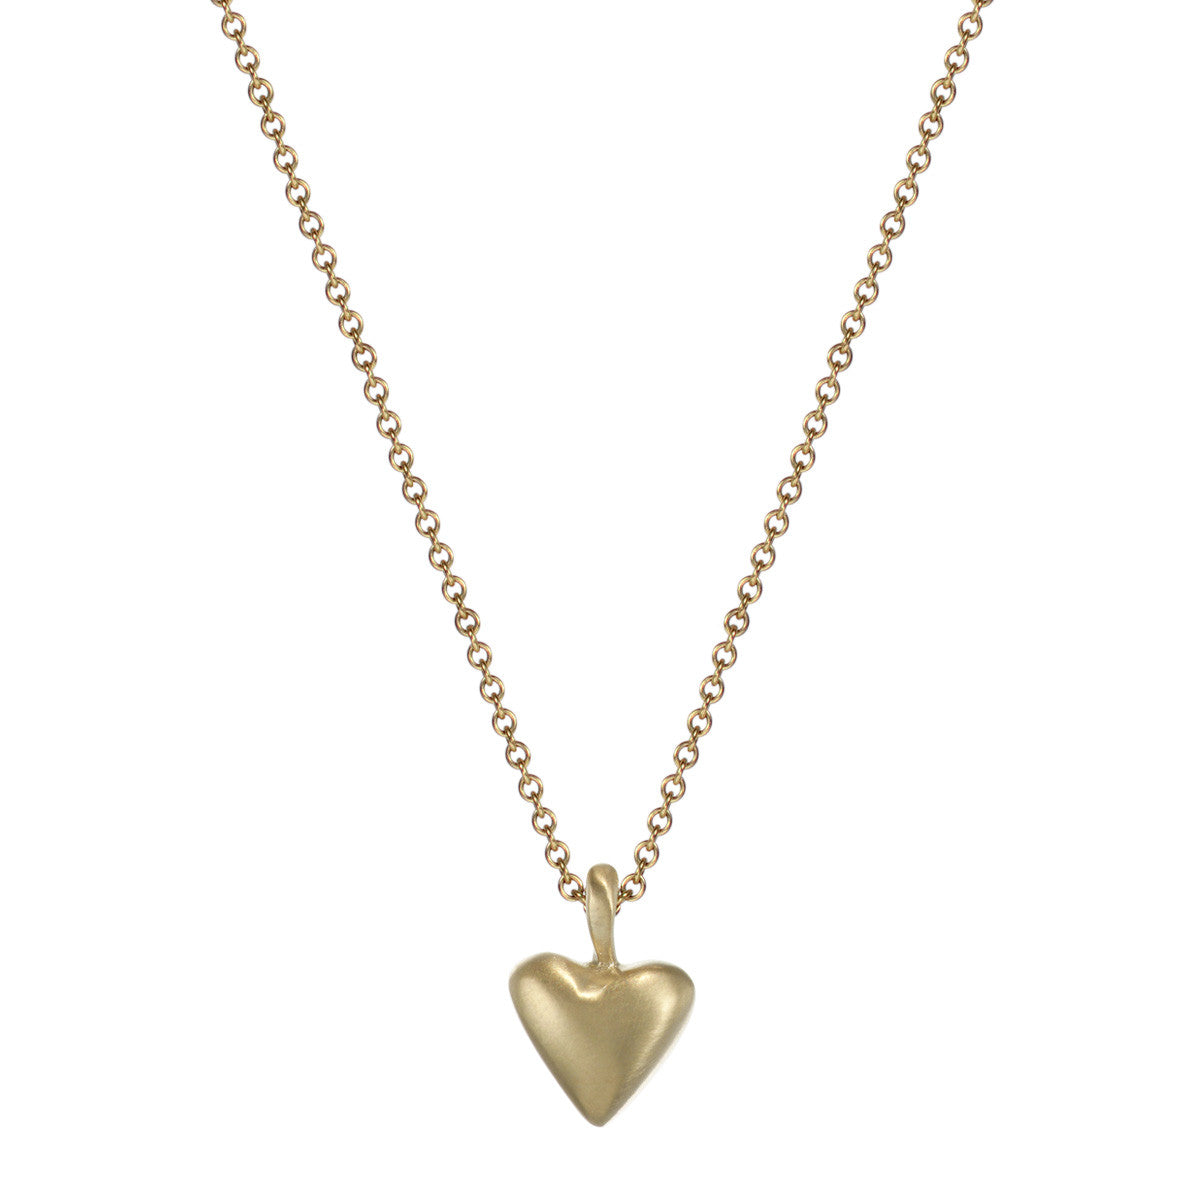 10K Gold Medium Heart on Chain